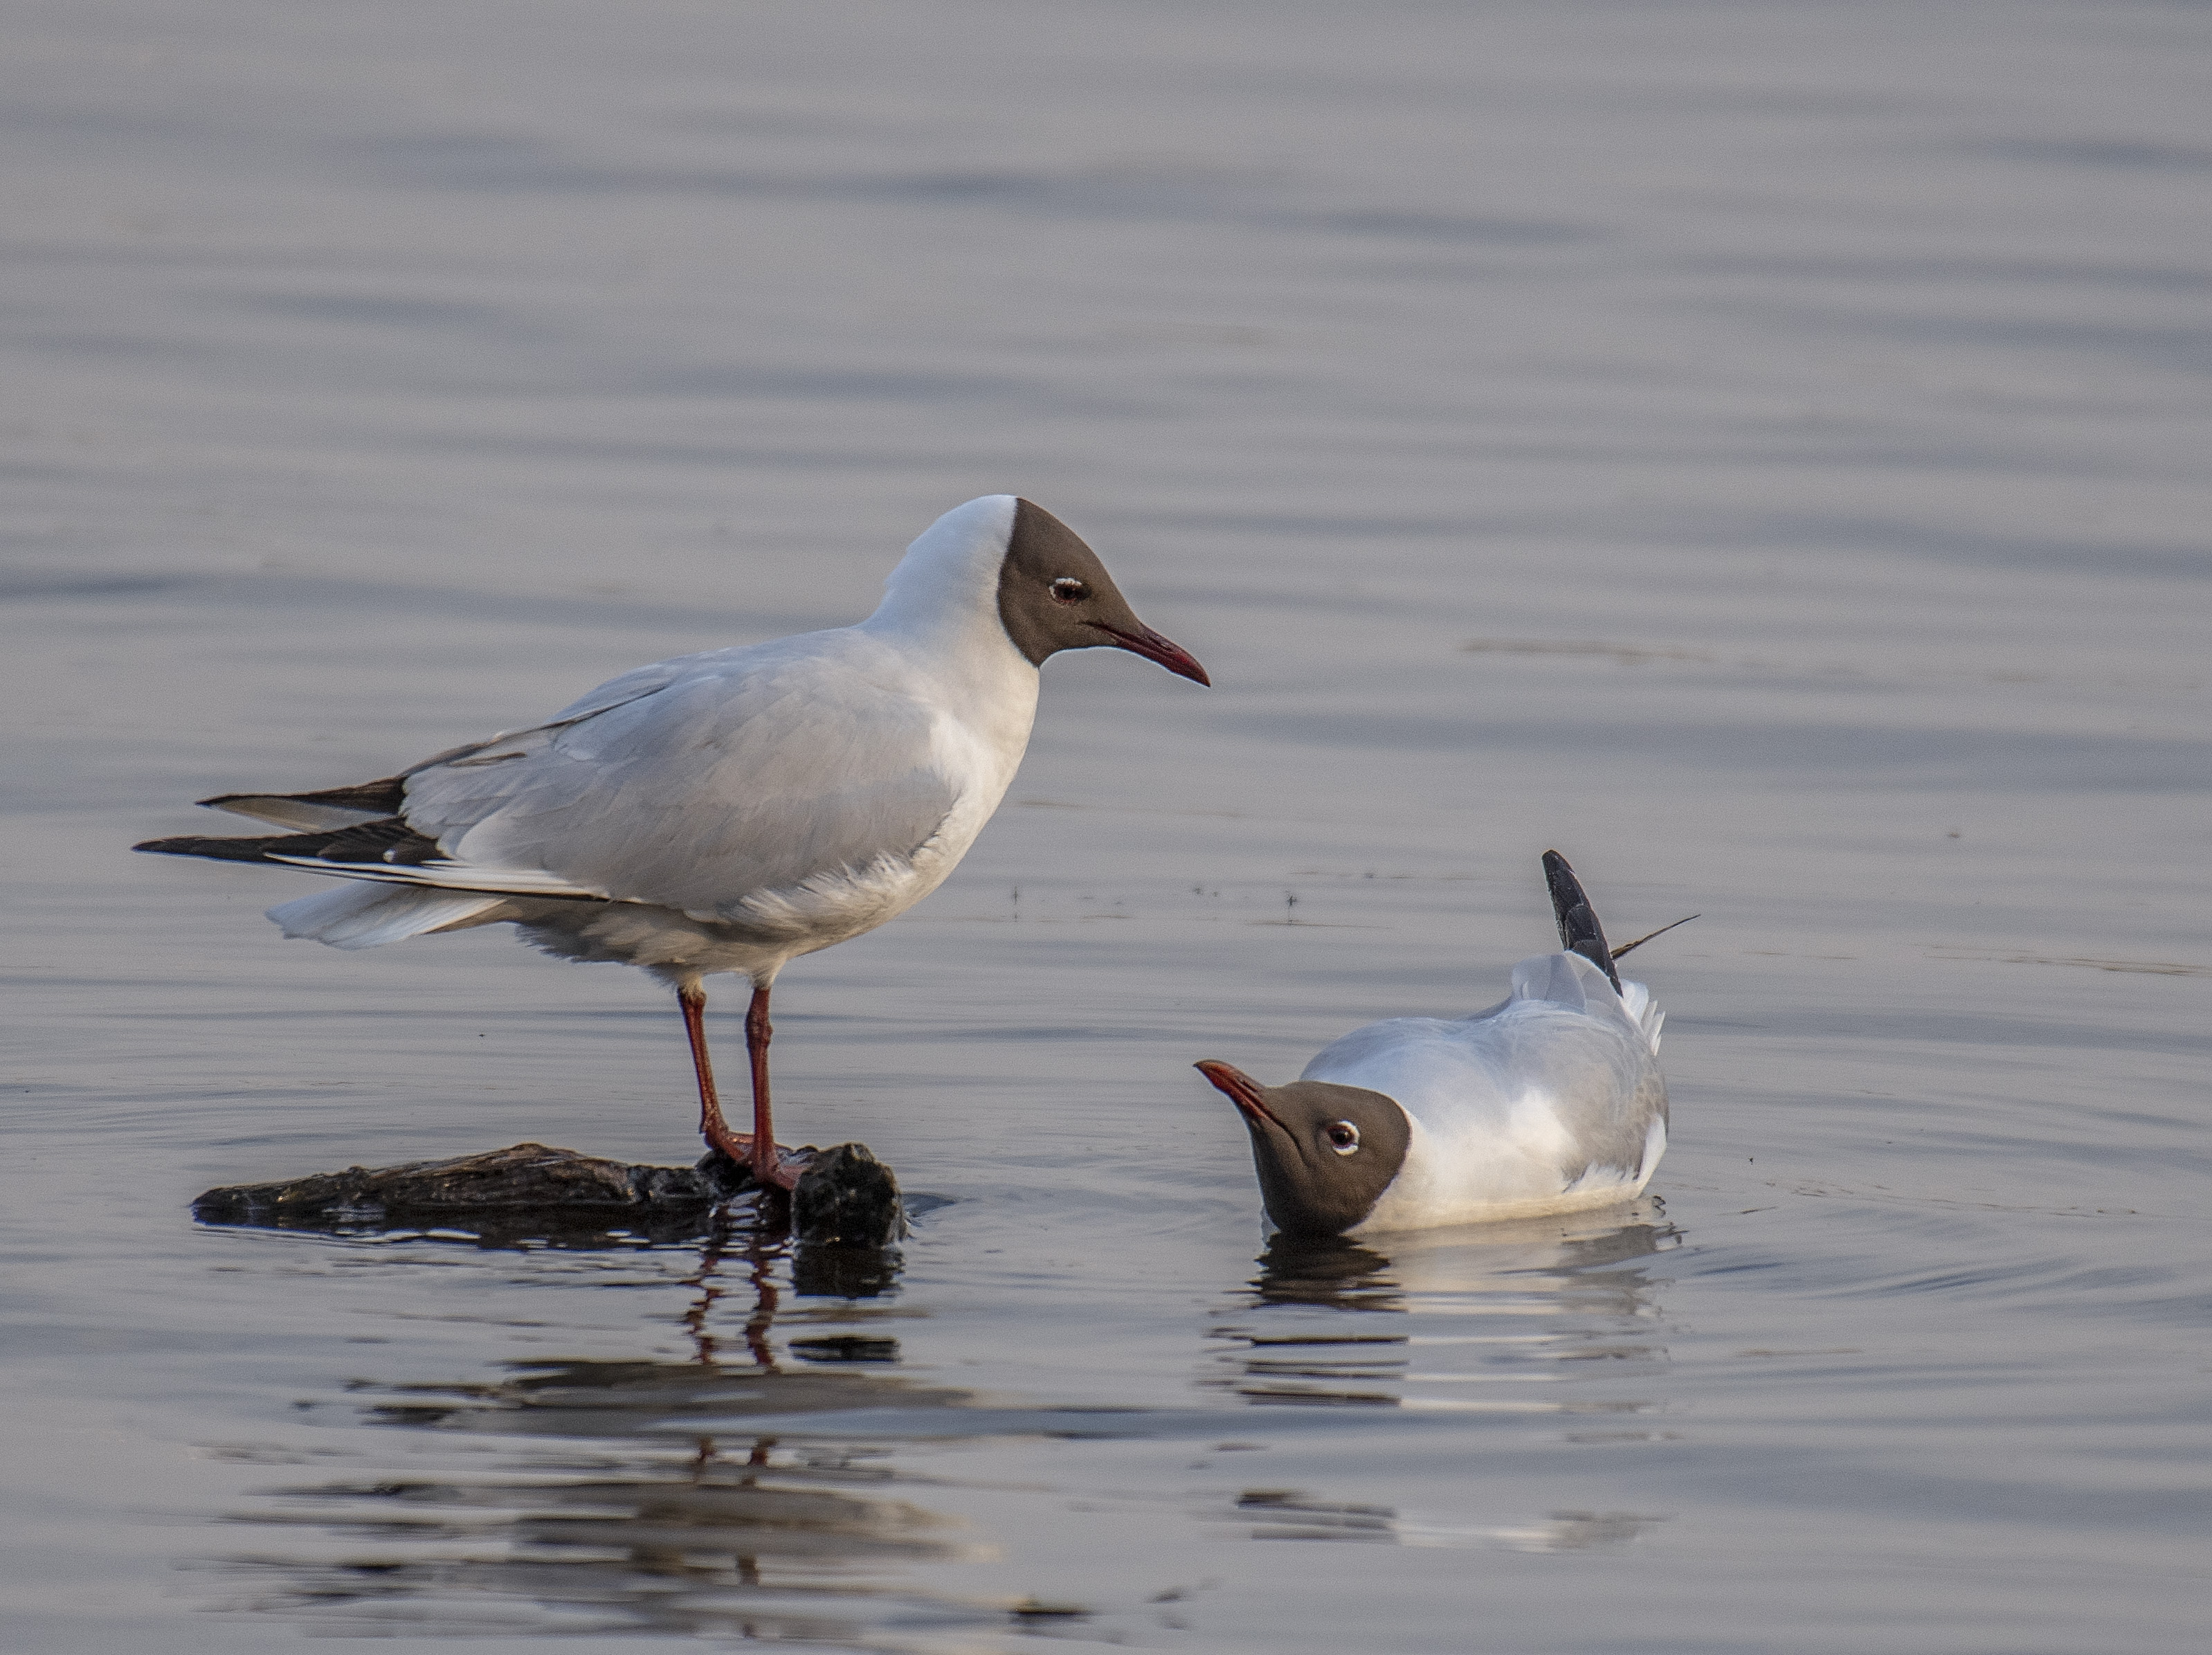 Skrattmås/Black-headed Gull